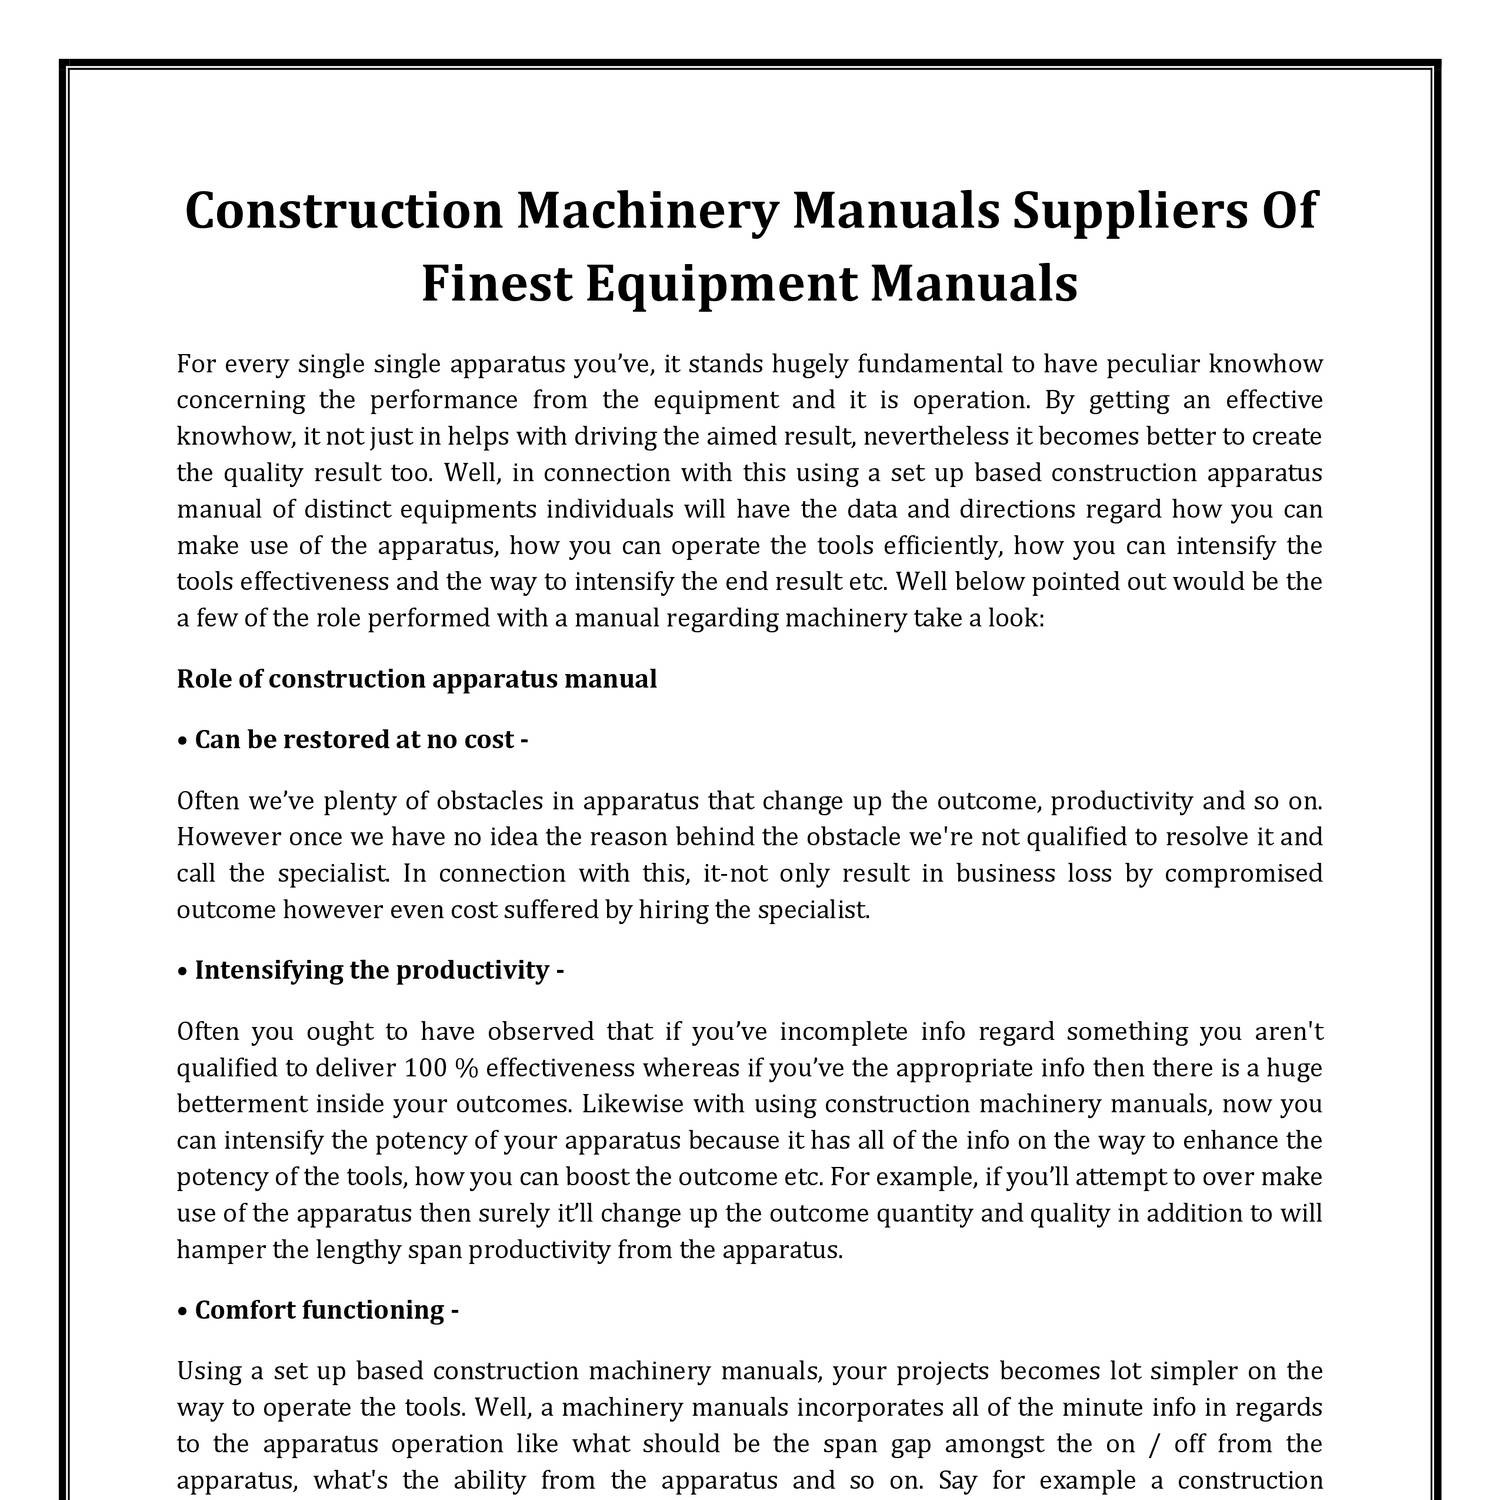 Construction Machinery Manuals.pdf | DocDroid